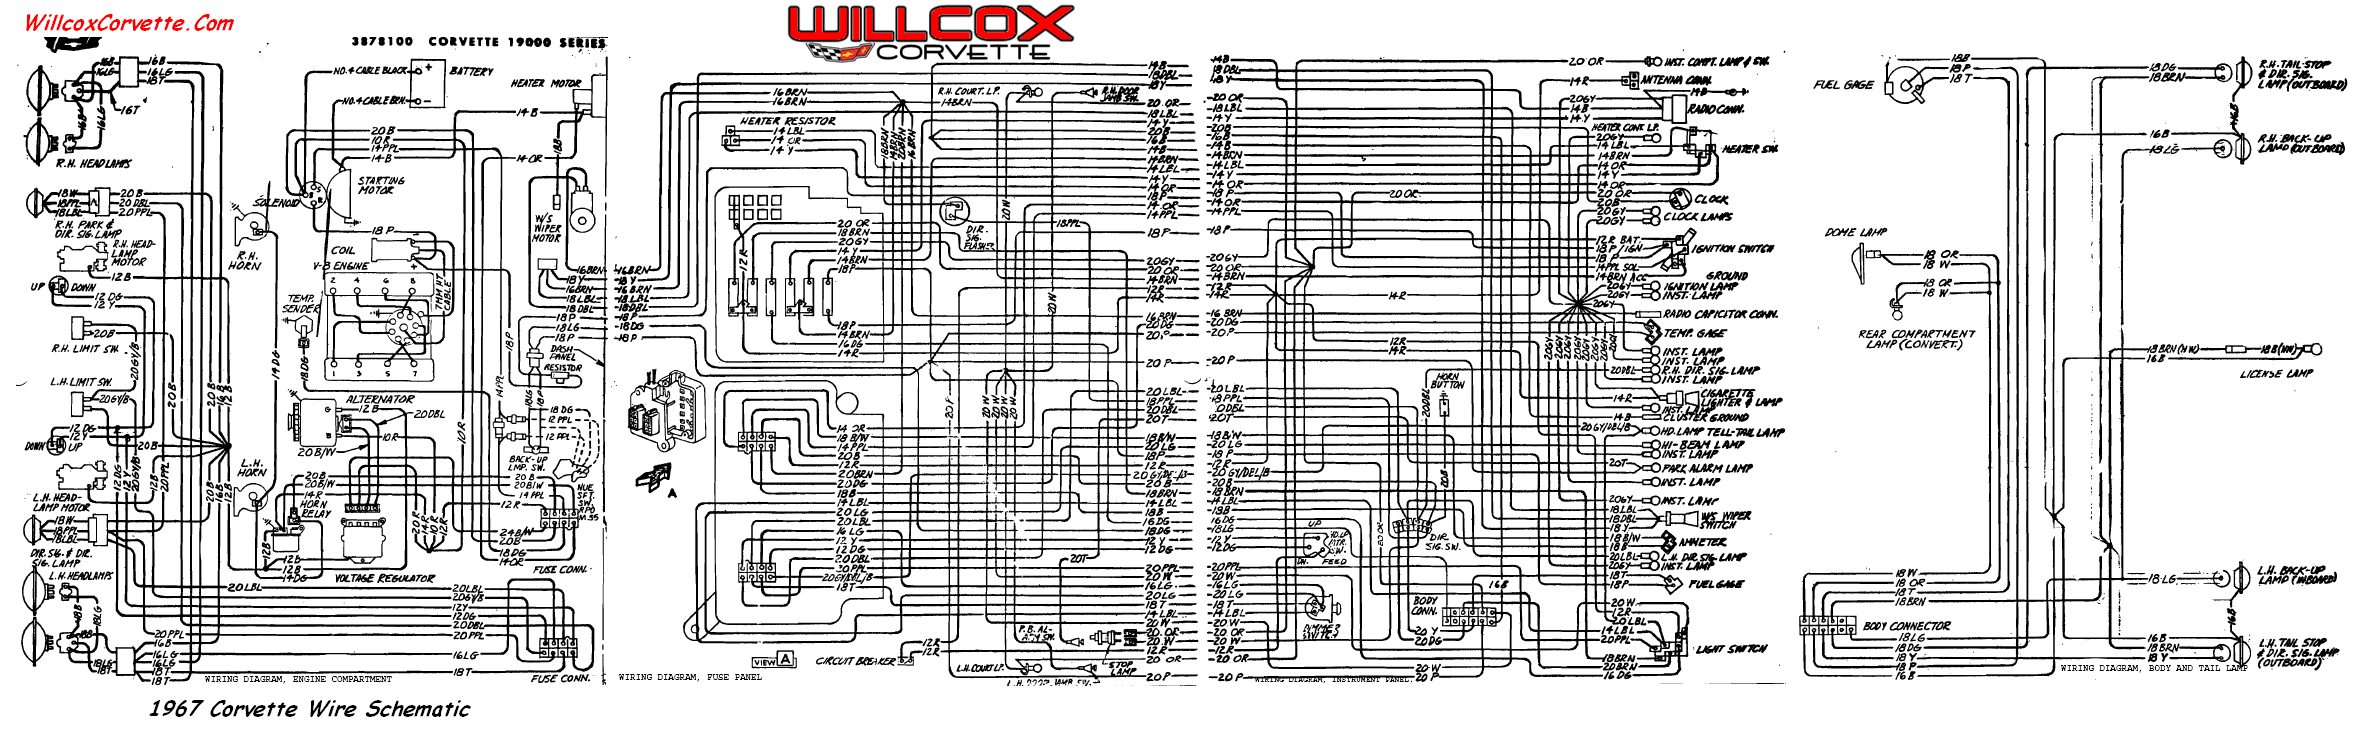 wire schematic corvette wiring diagram corvette wiring diagrams online 1967 corvette wiring diagram tracer schematic willcox corvette